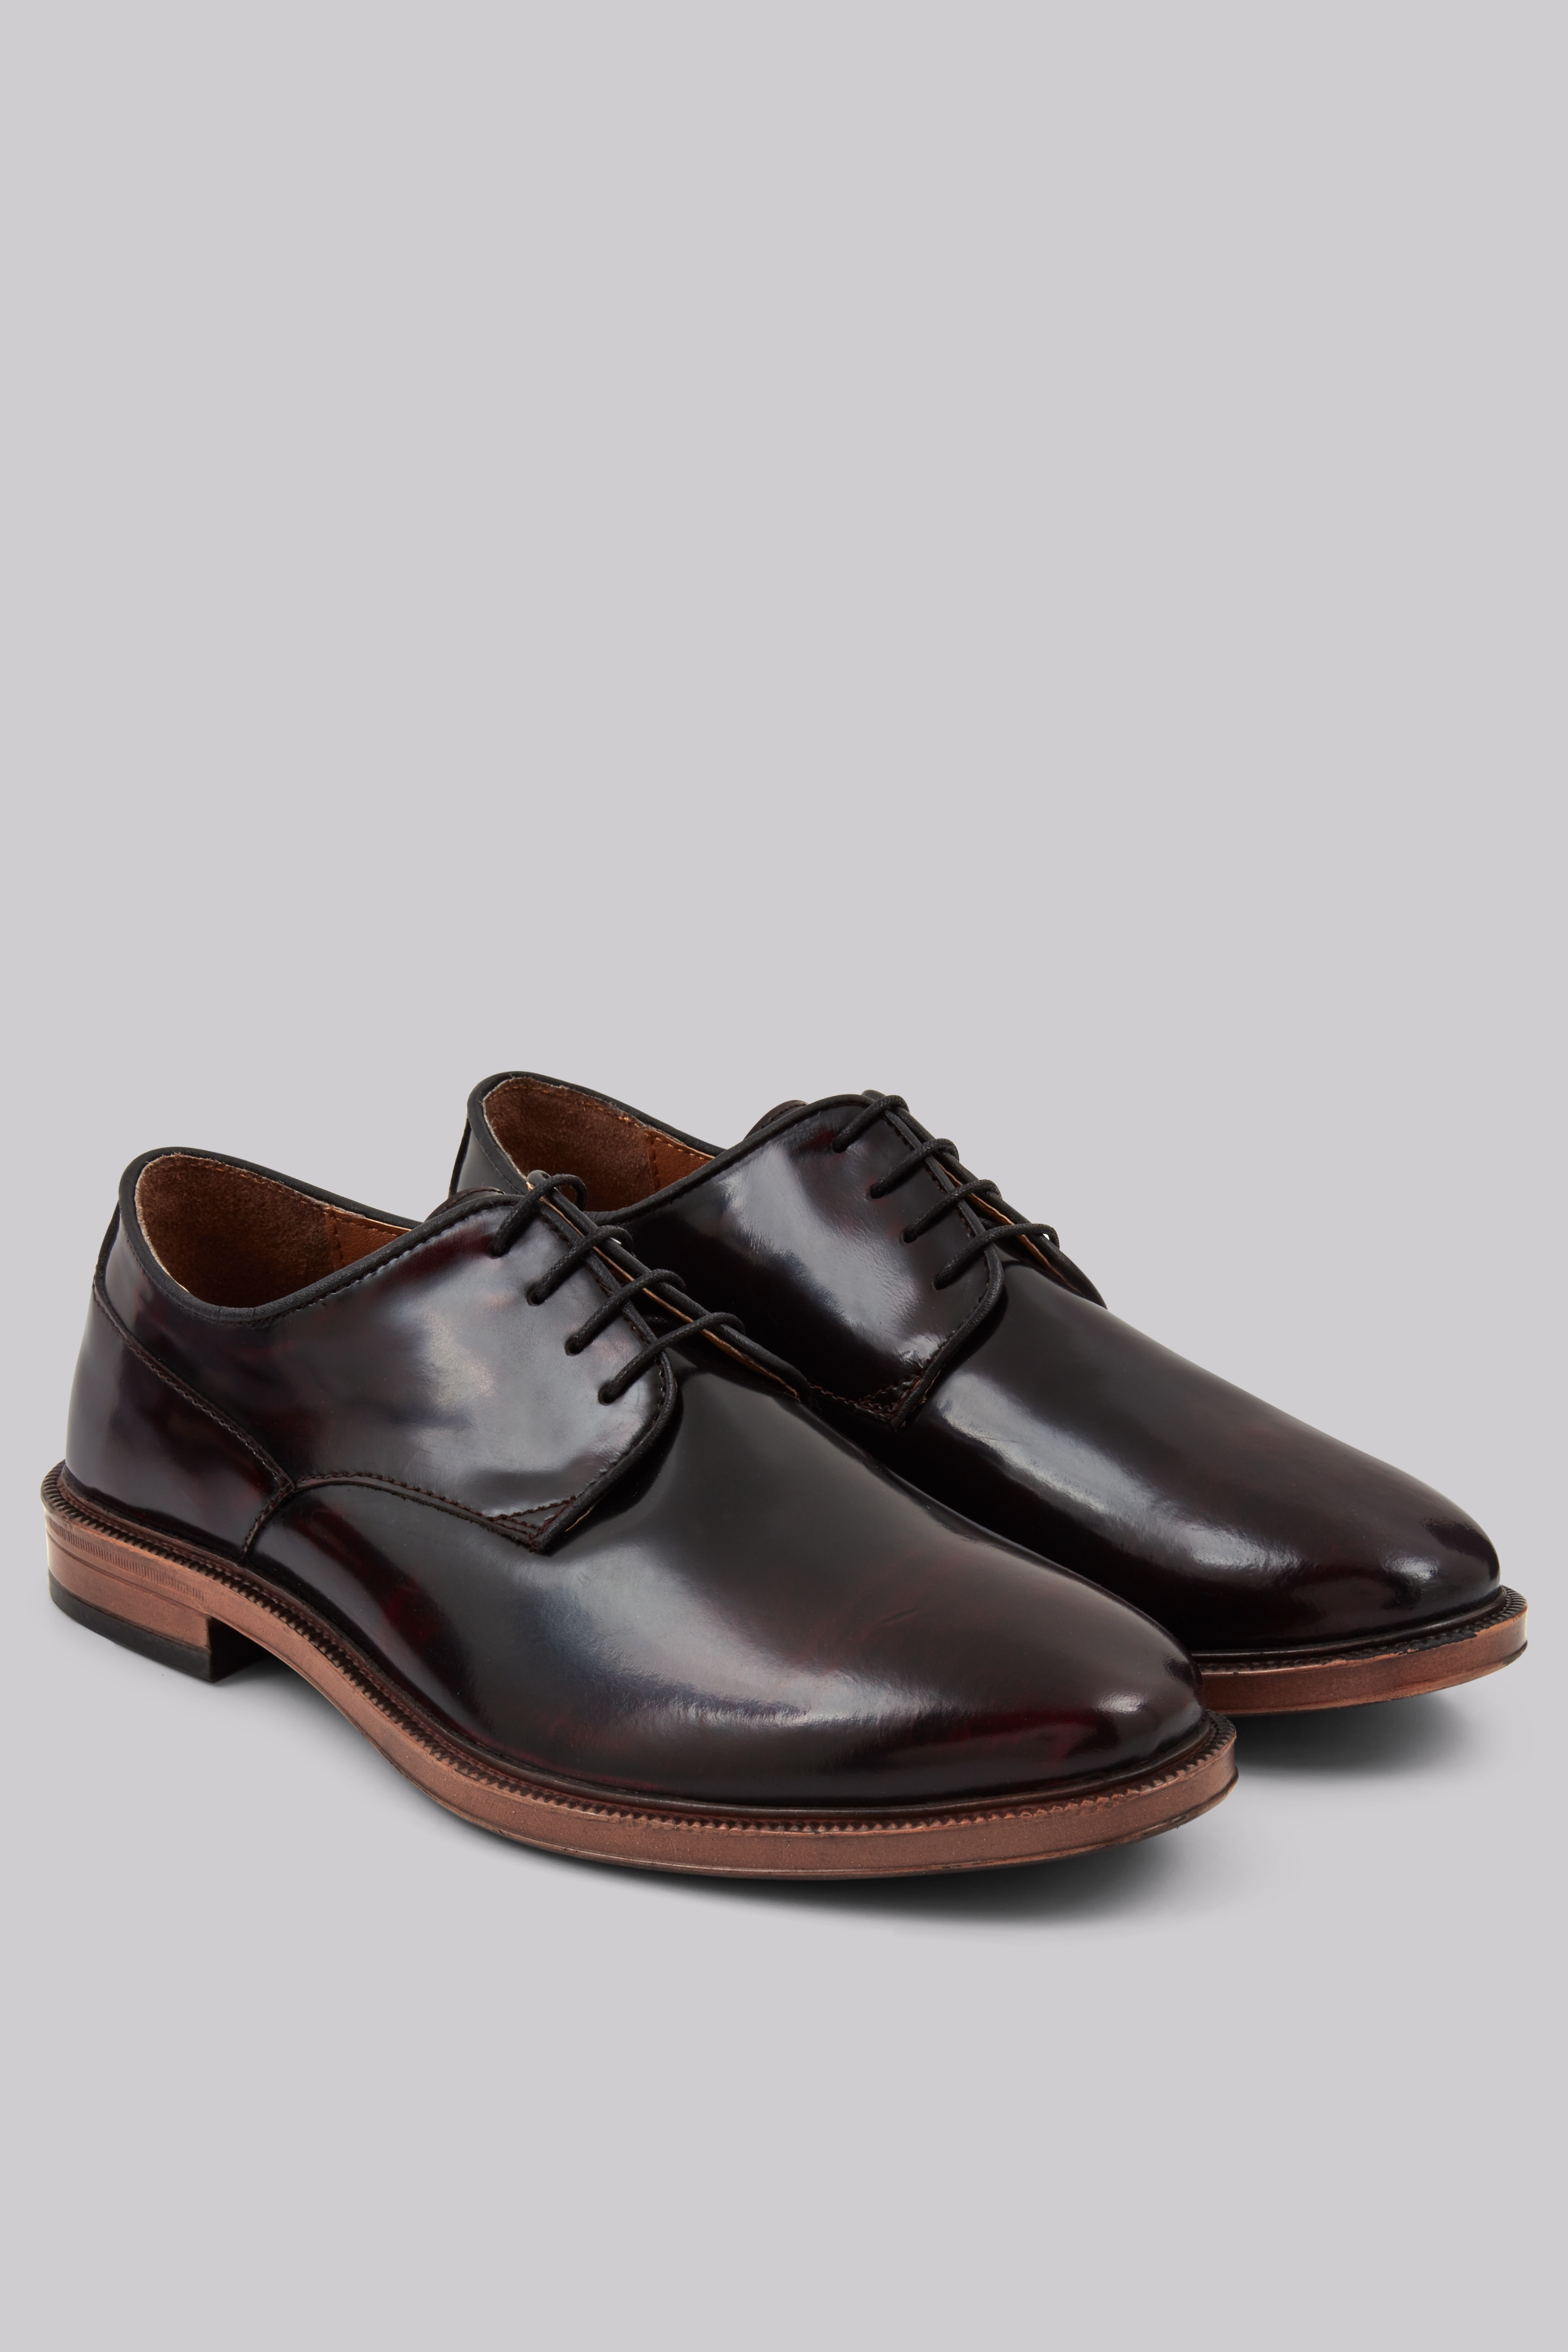 Dress shoes for men are available online at Moss Bros. Discover an array of styles to suit your black tie attire.